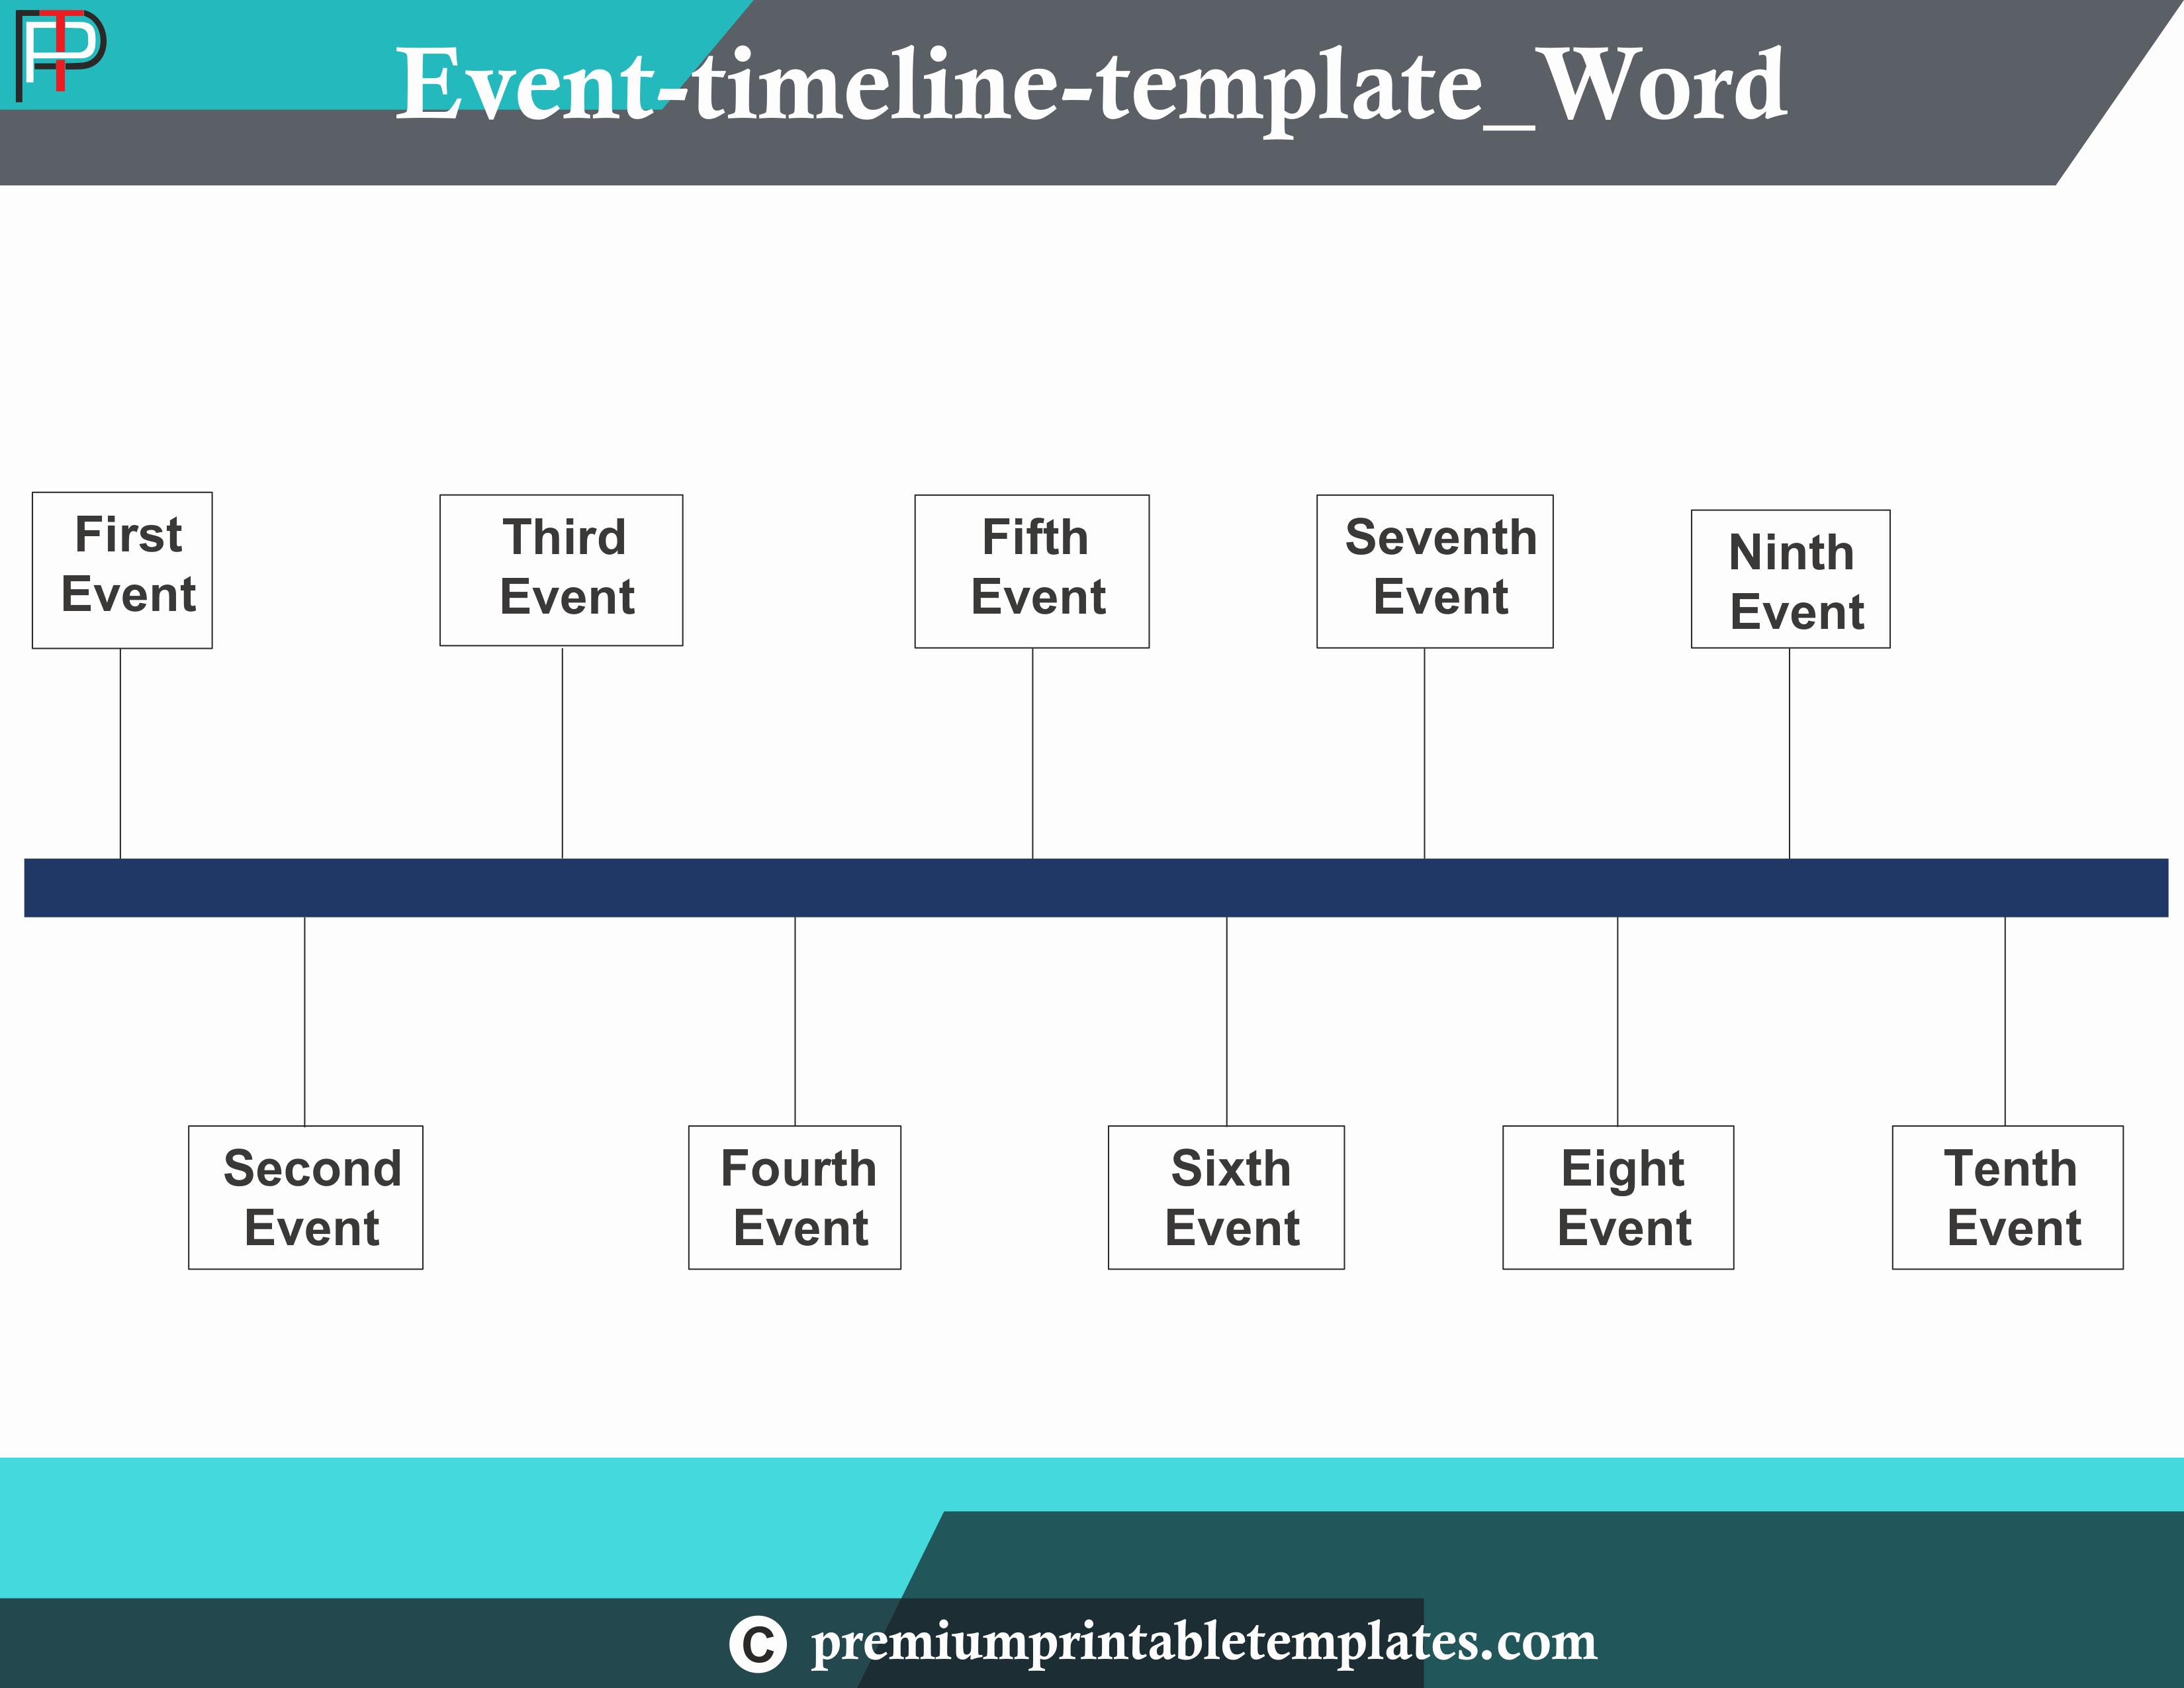 Timeline Templates for Word Lovely event Timeline Template Word – Premium Printable Templates